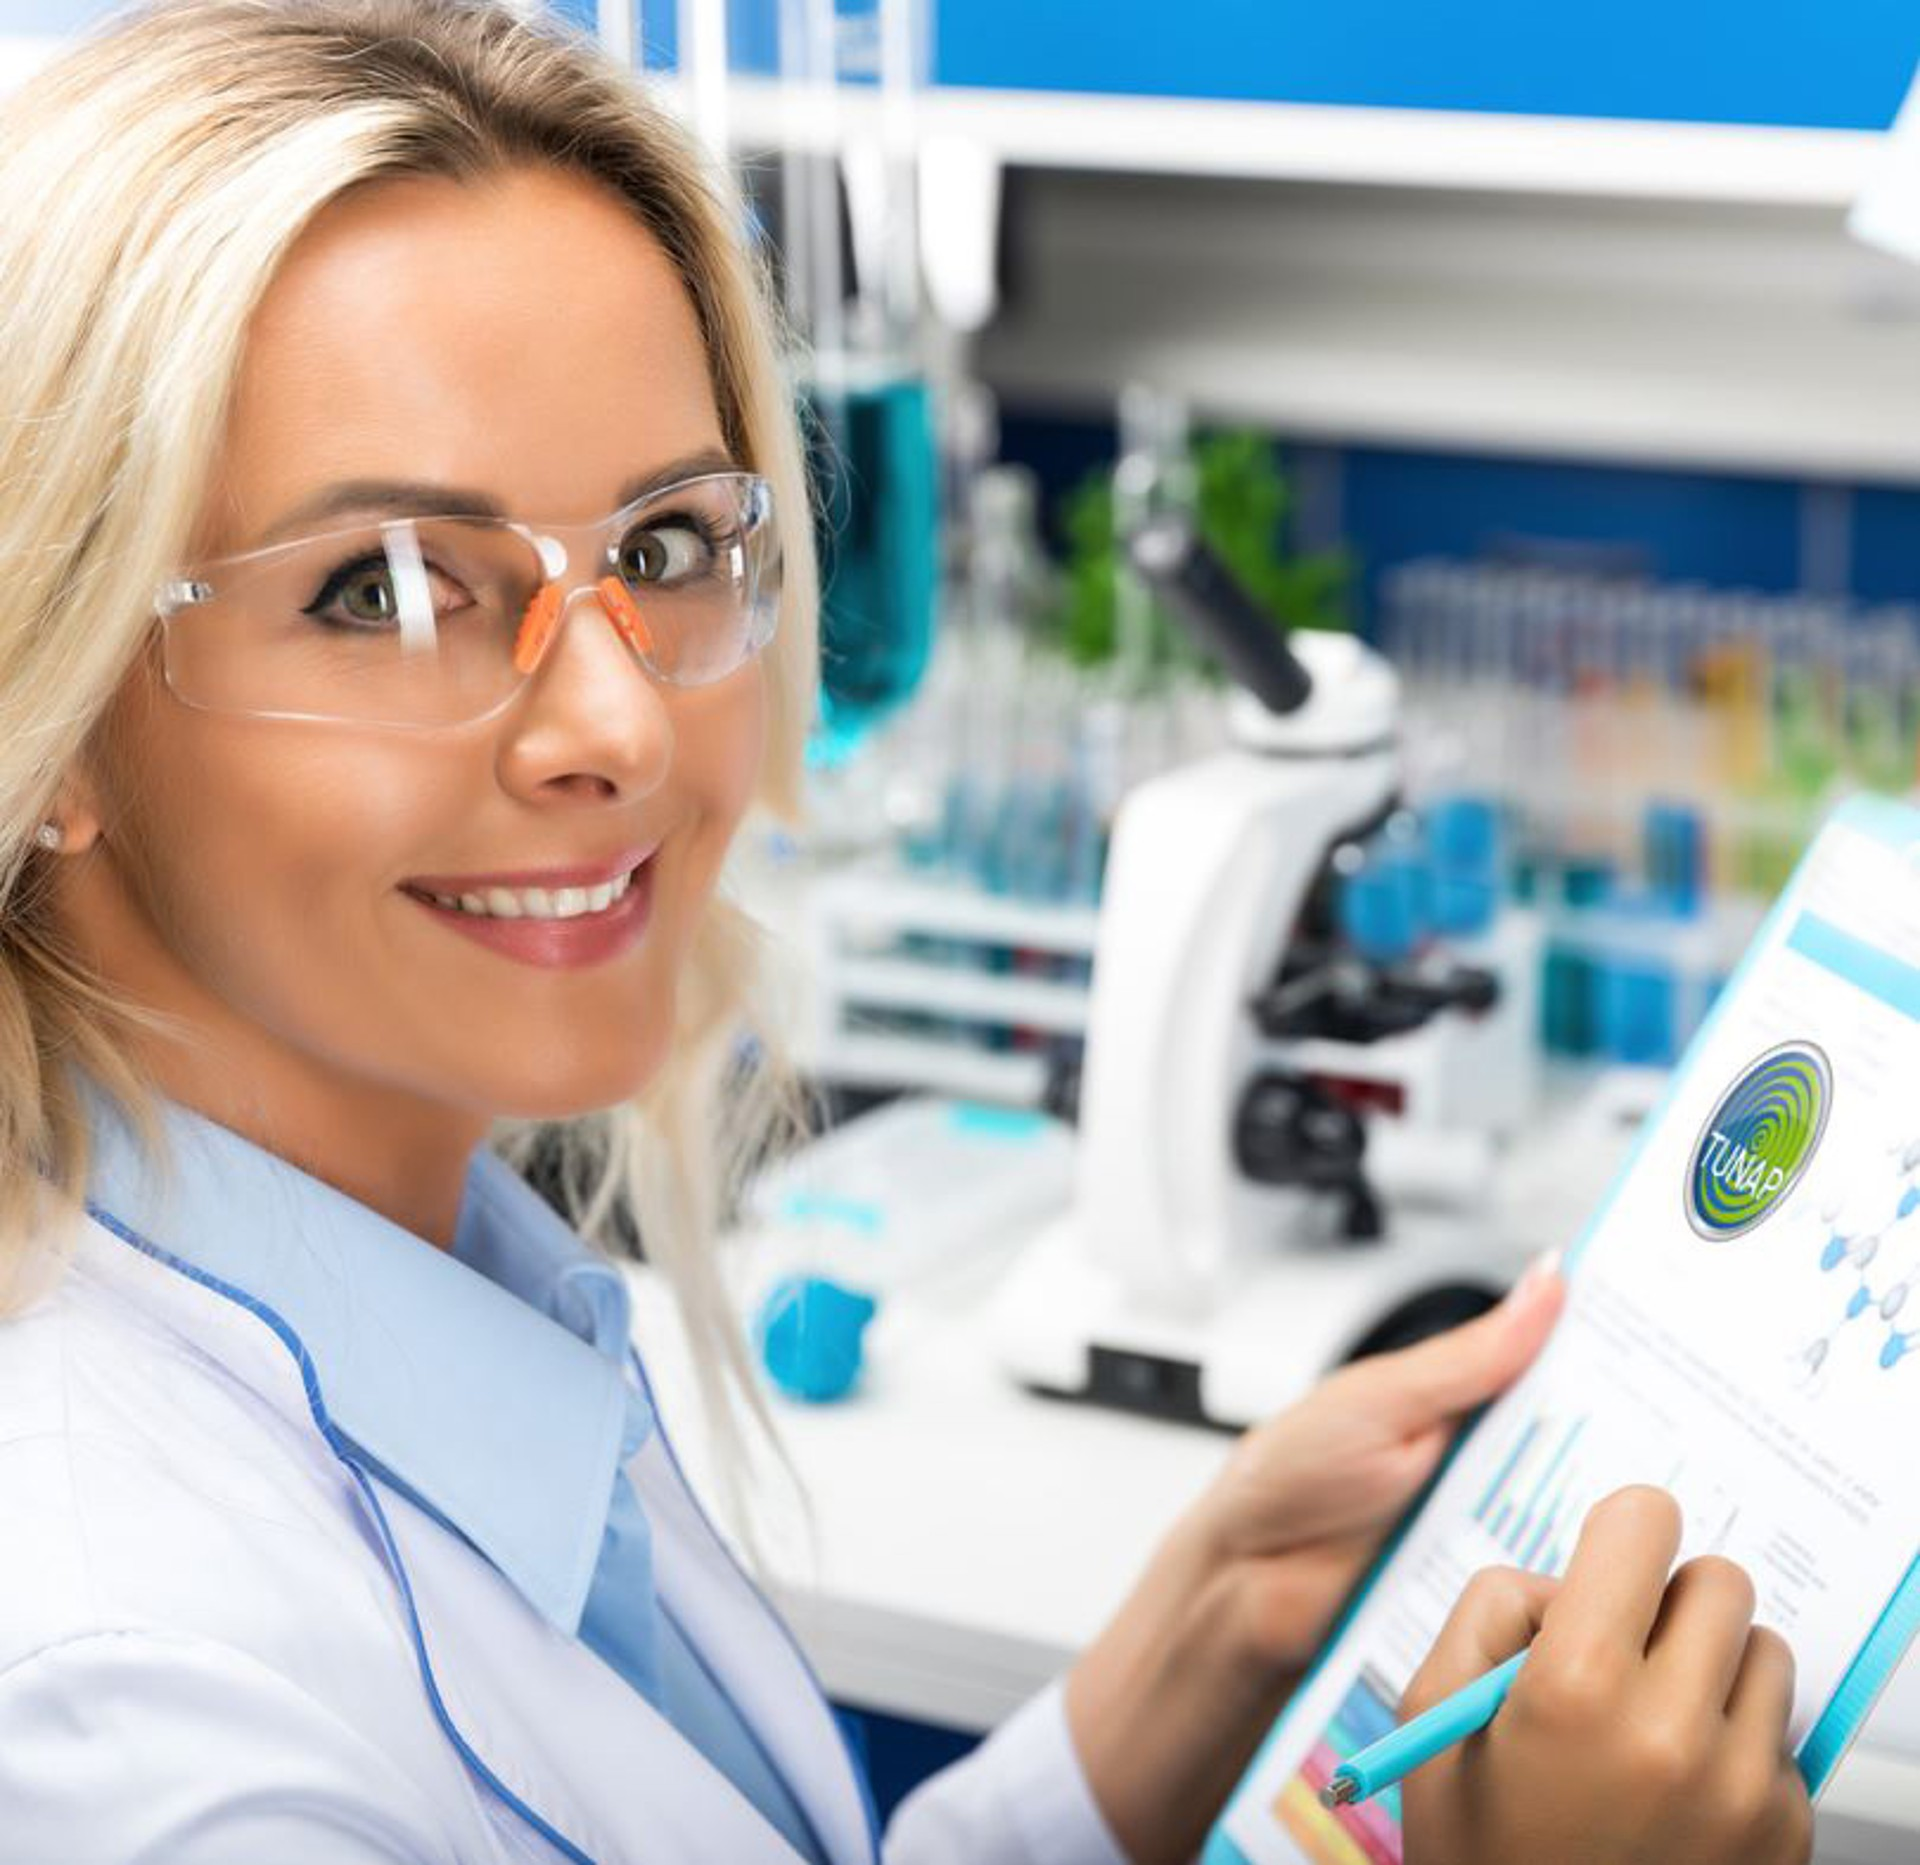 Smiling laboratory chemist wearing glasses and in the background a microscope and test tubes